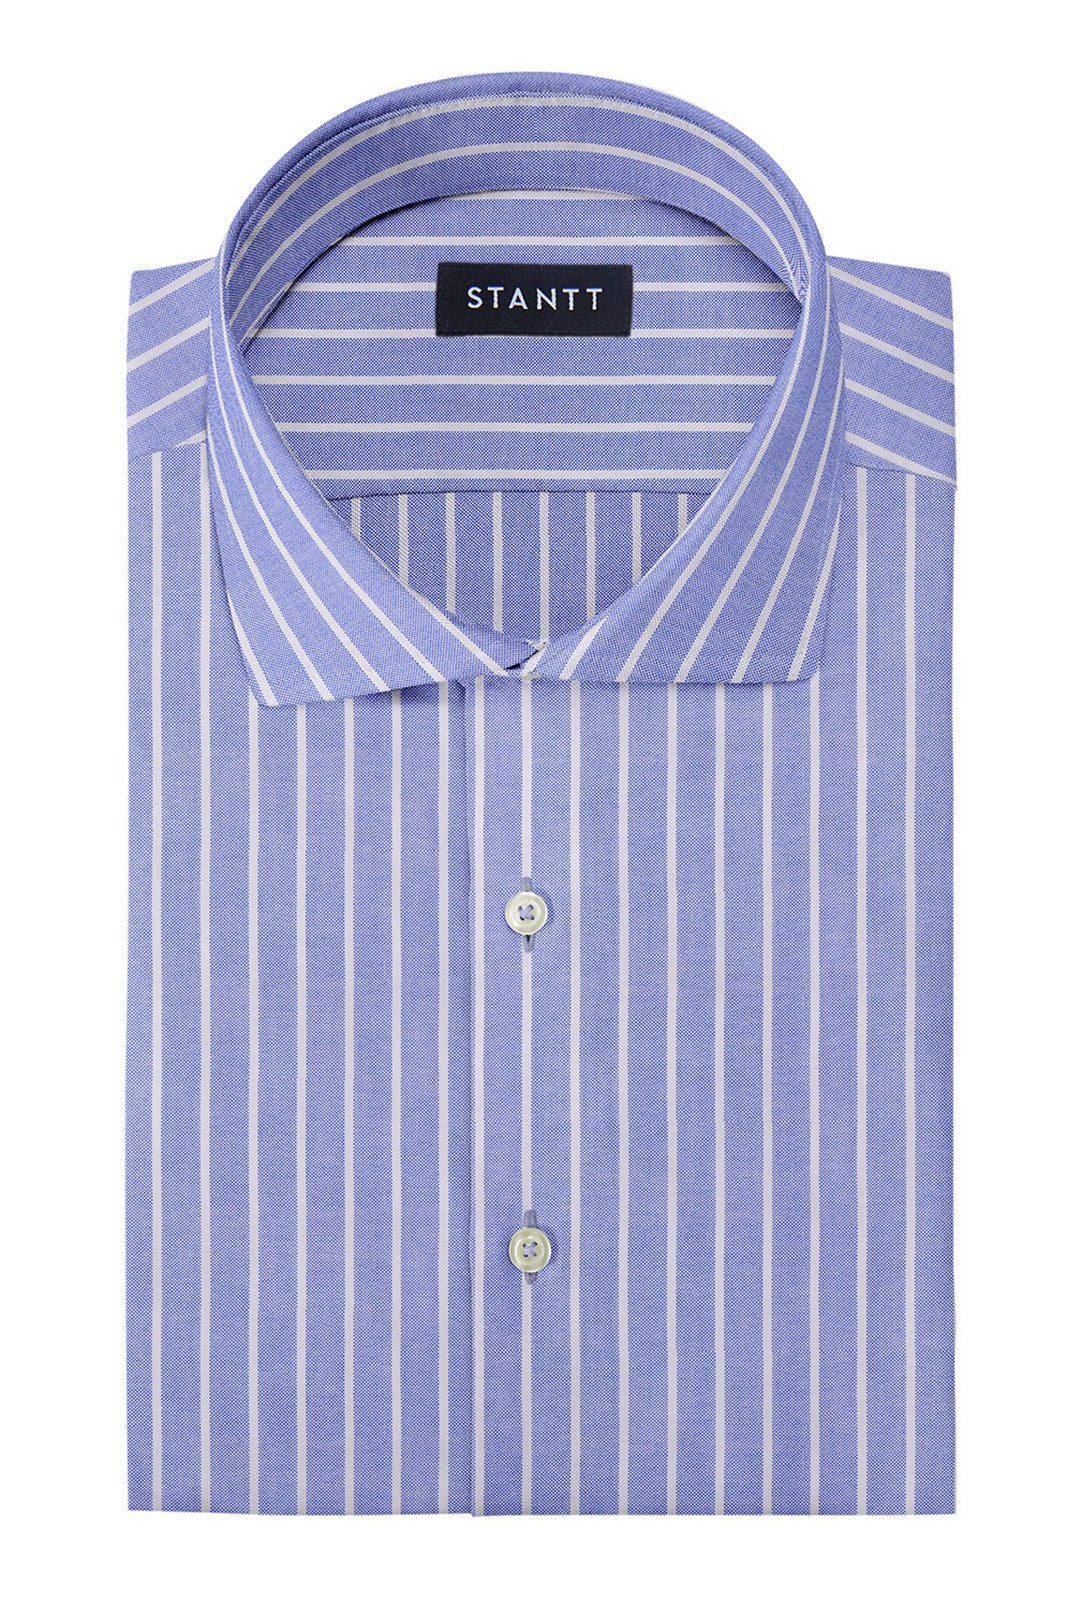 Powder Blue Reverse Stripe Oxford: Cutaway Collar, Barrel Cuff